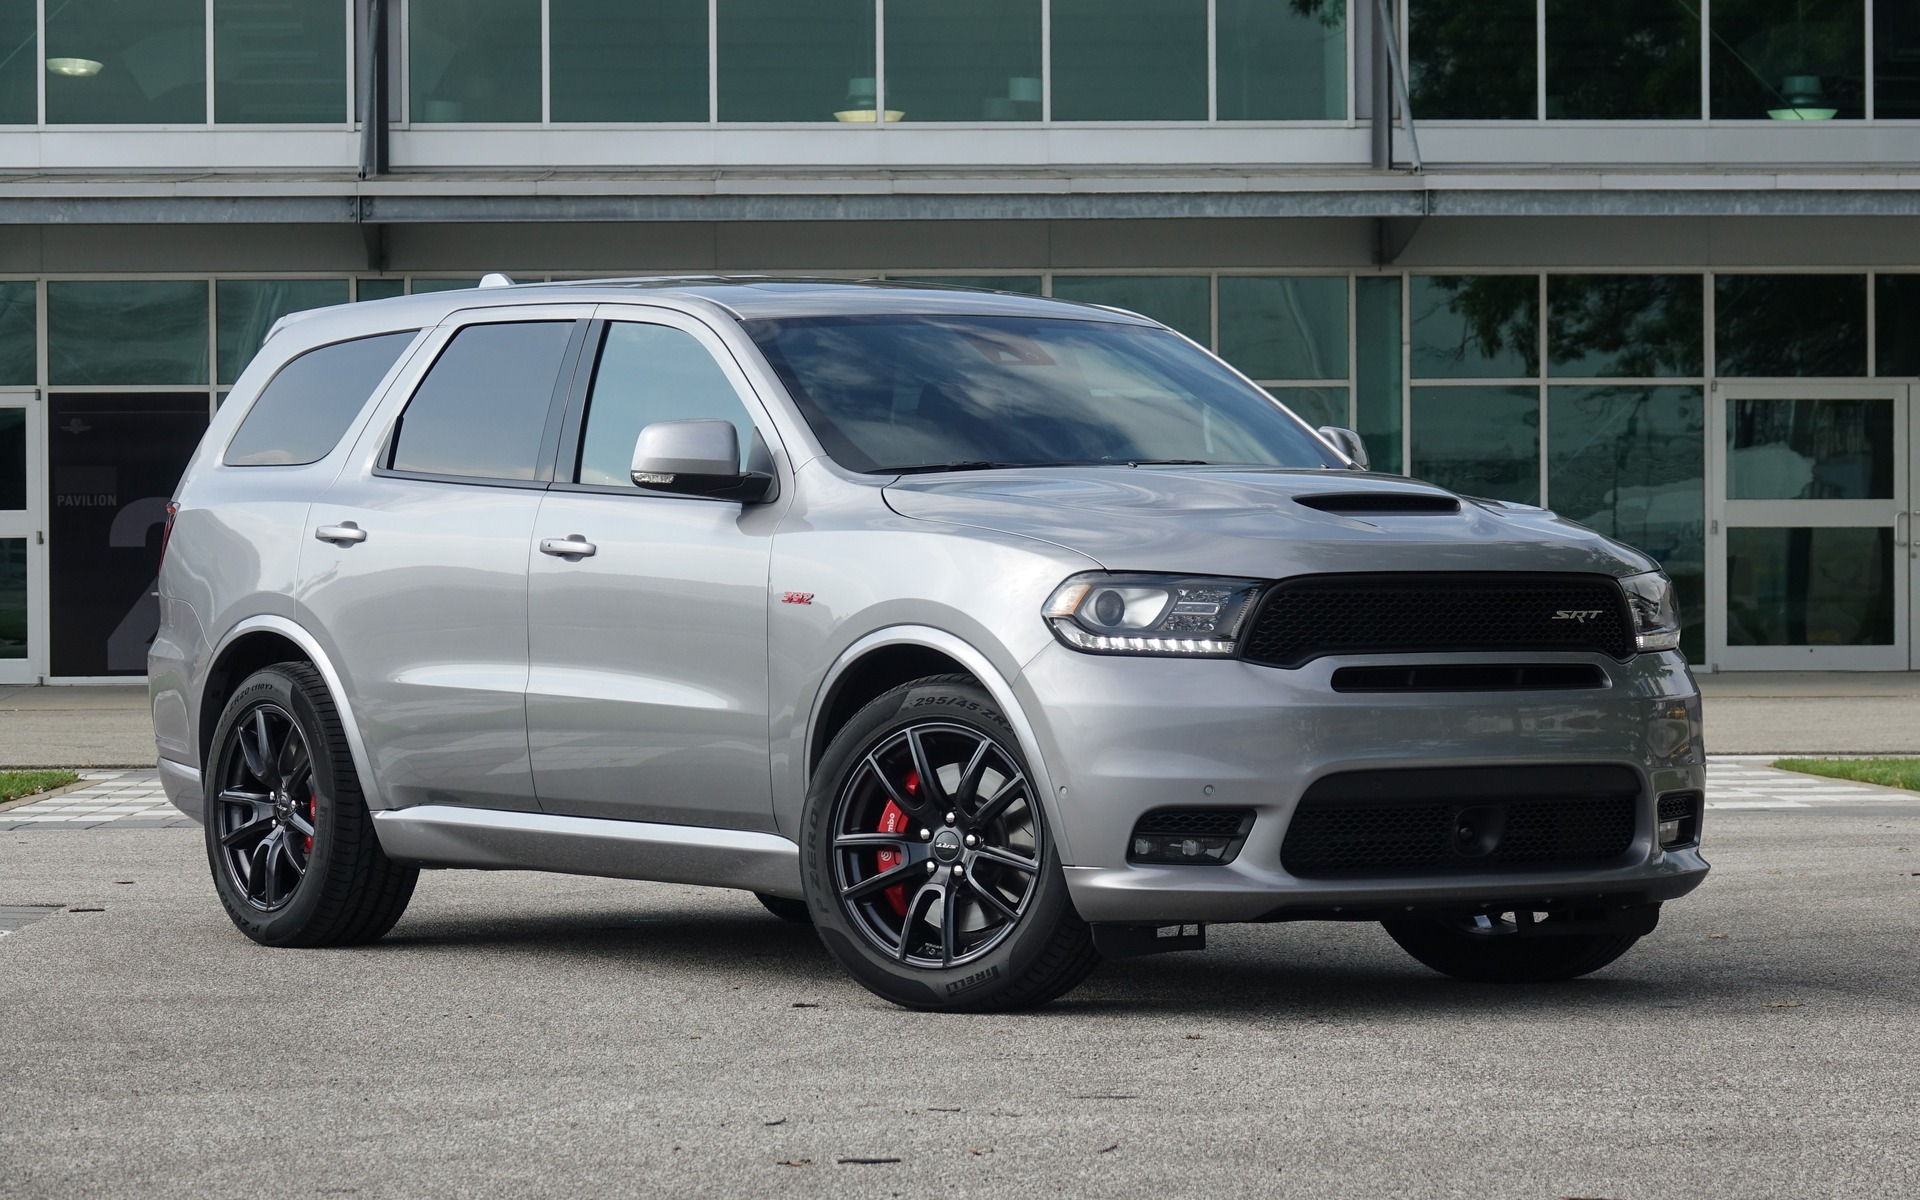 the in blog a holiday season dodge durango celebrate kendall